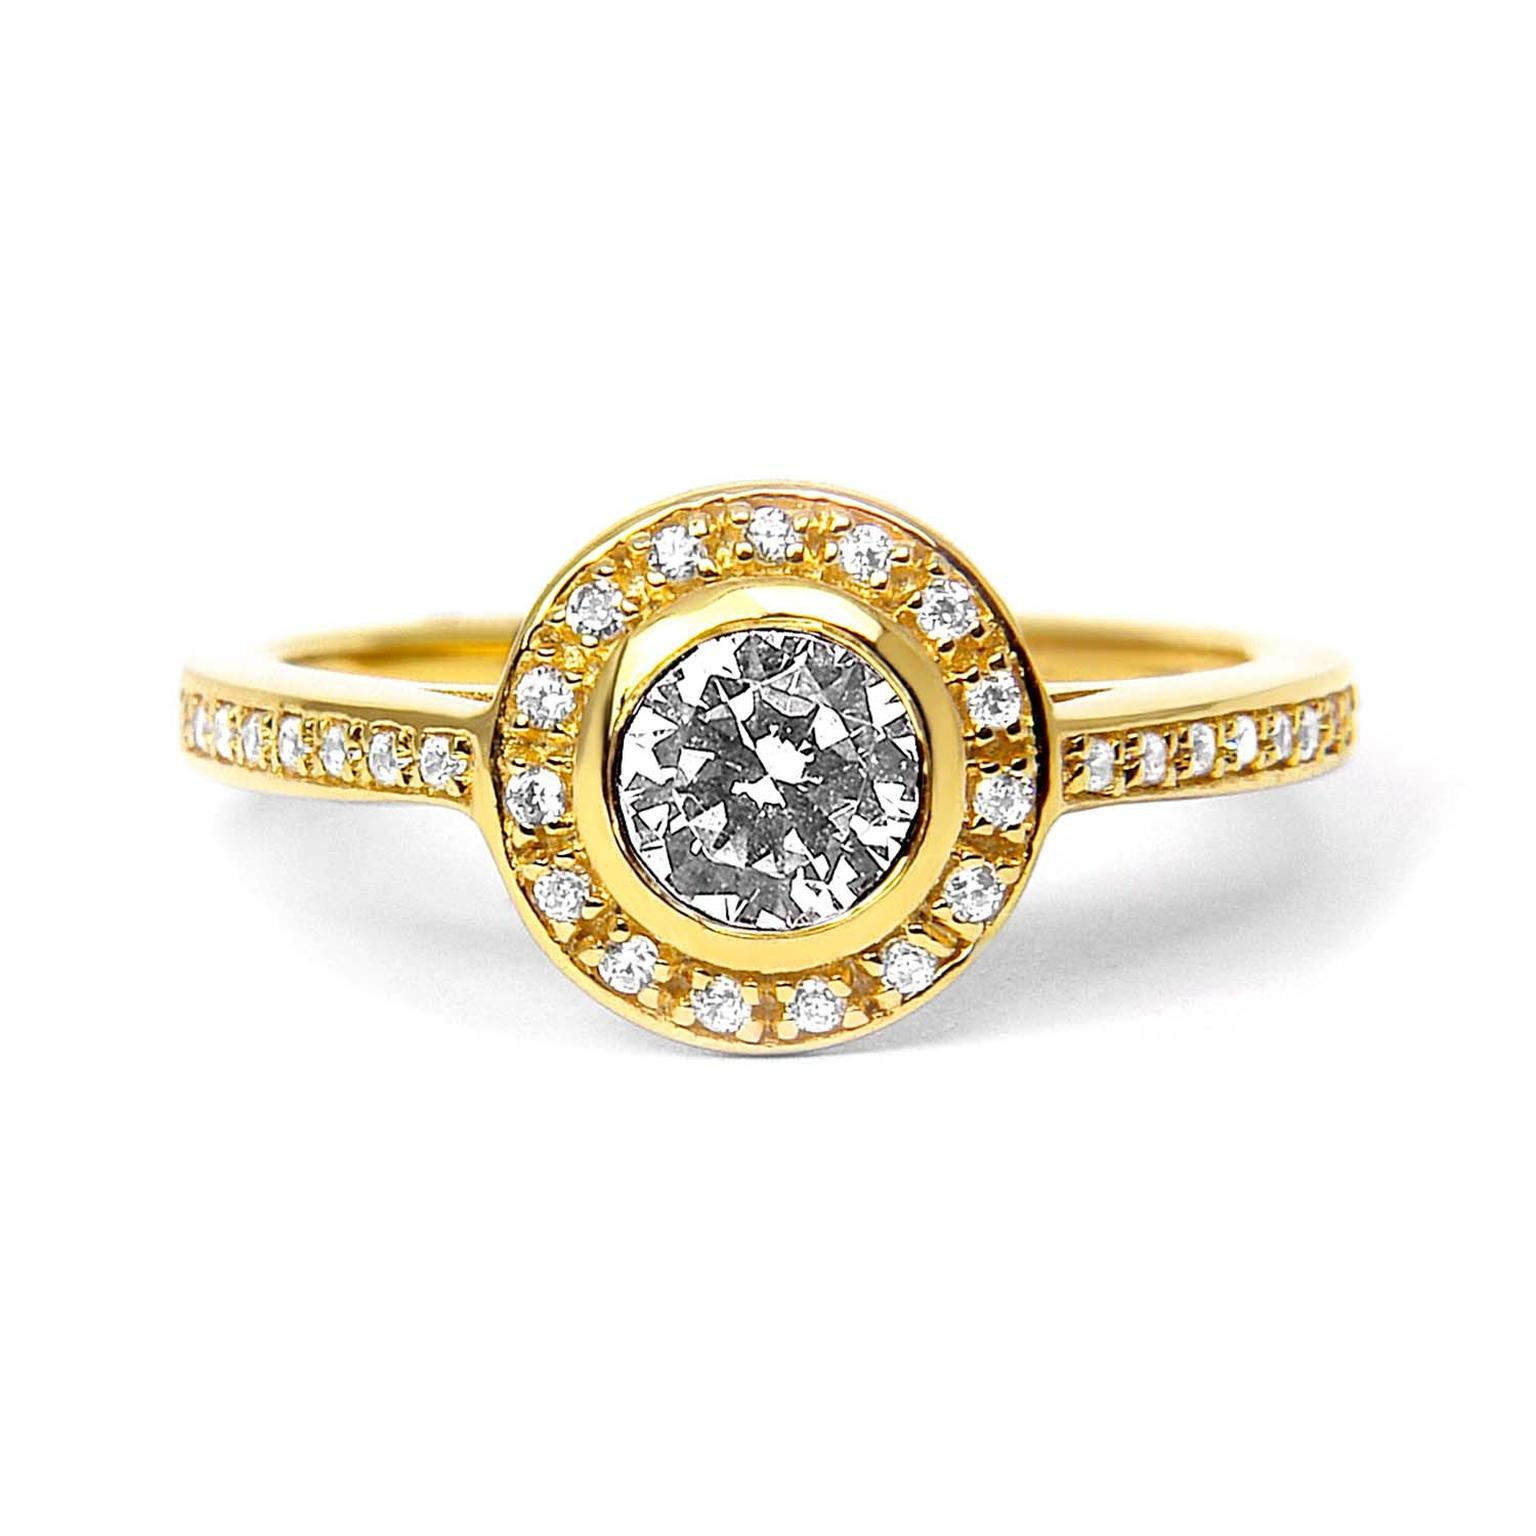 crop engagement diamond rings false product valerio canadian cut cushion shop subsampling upscale ethical trilogy ring greg scale